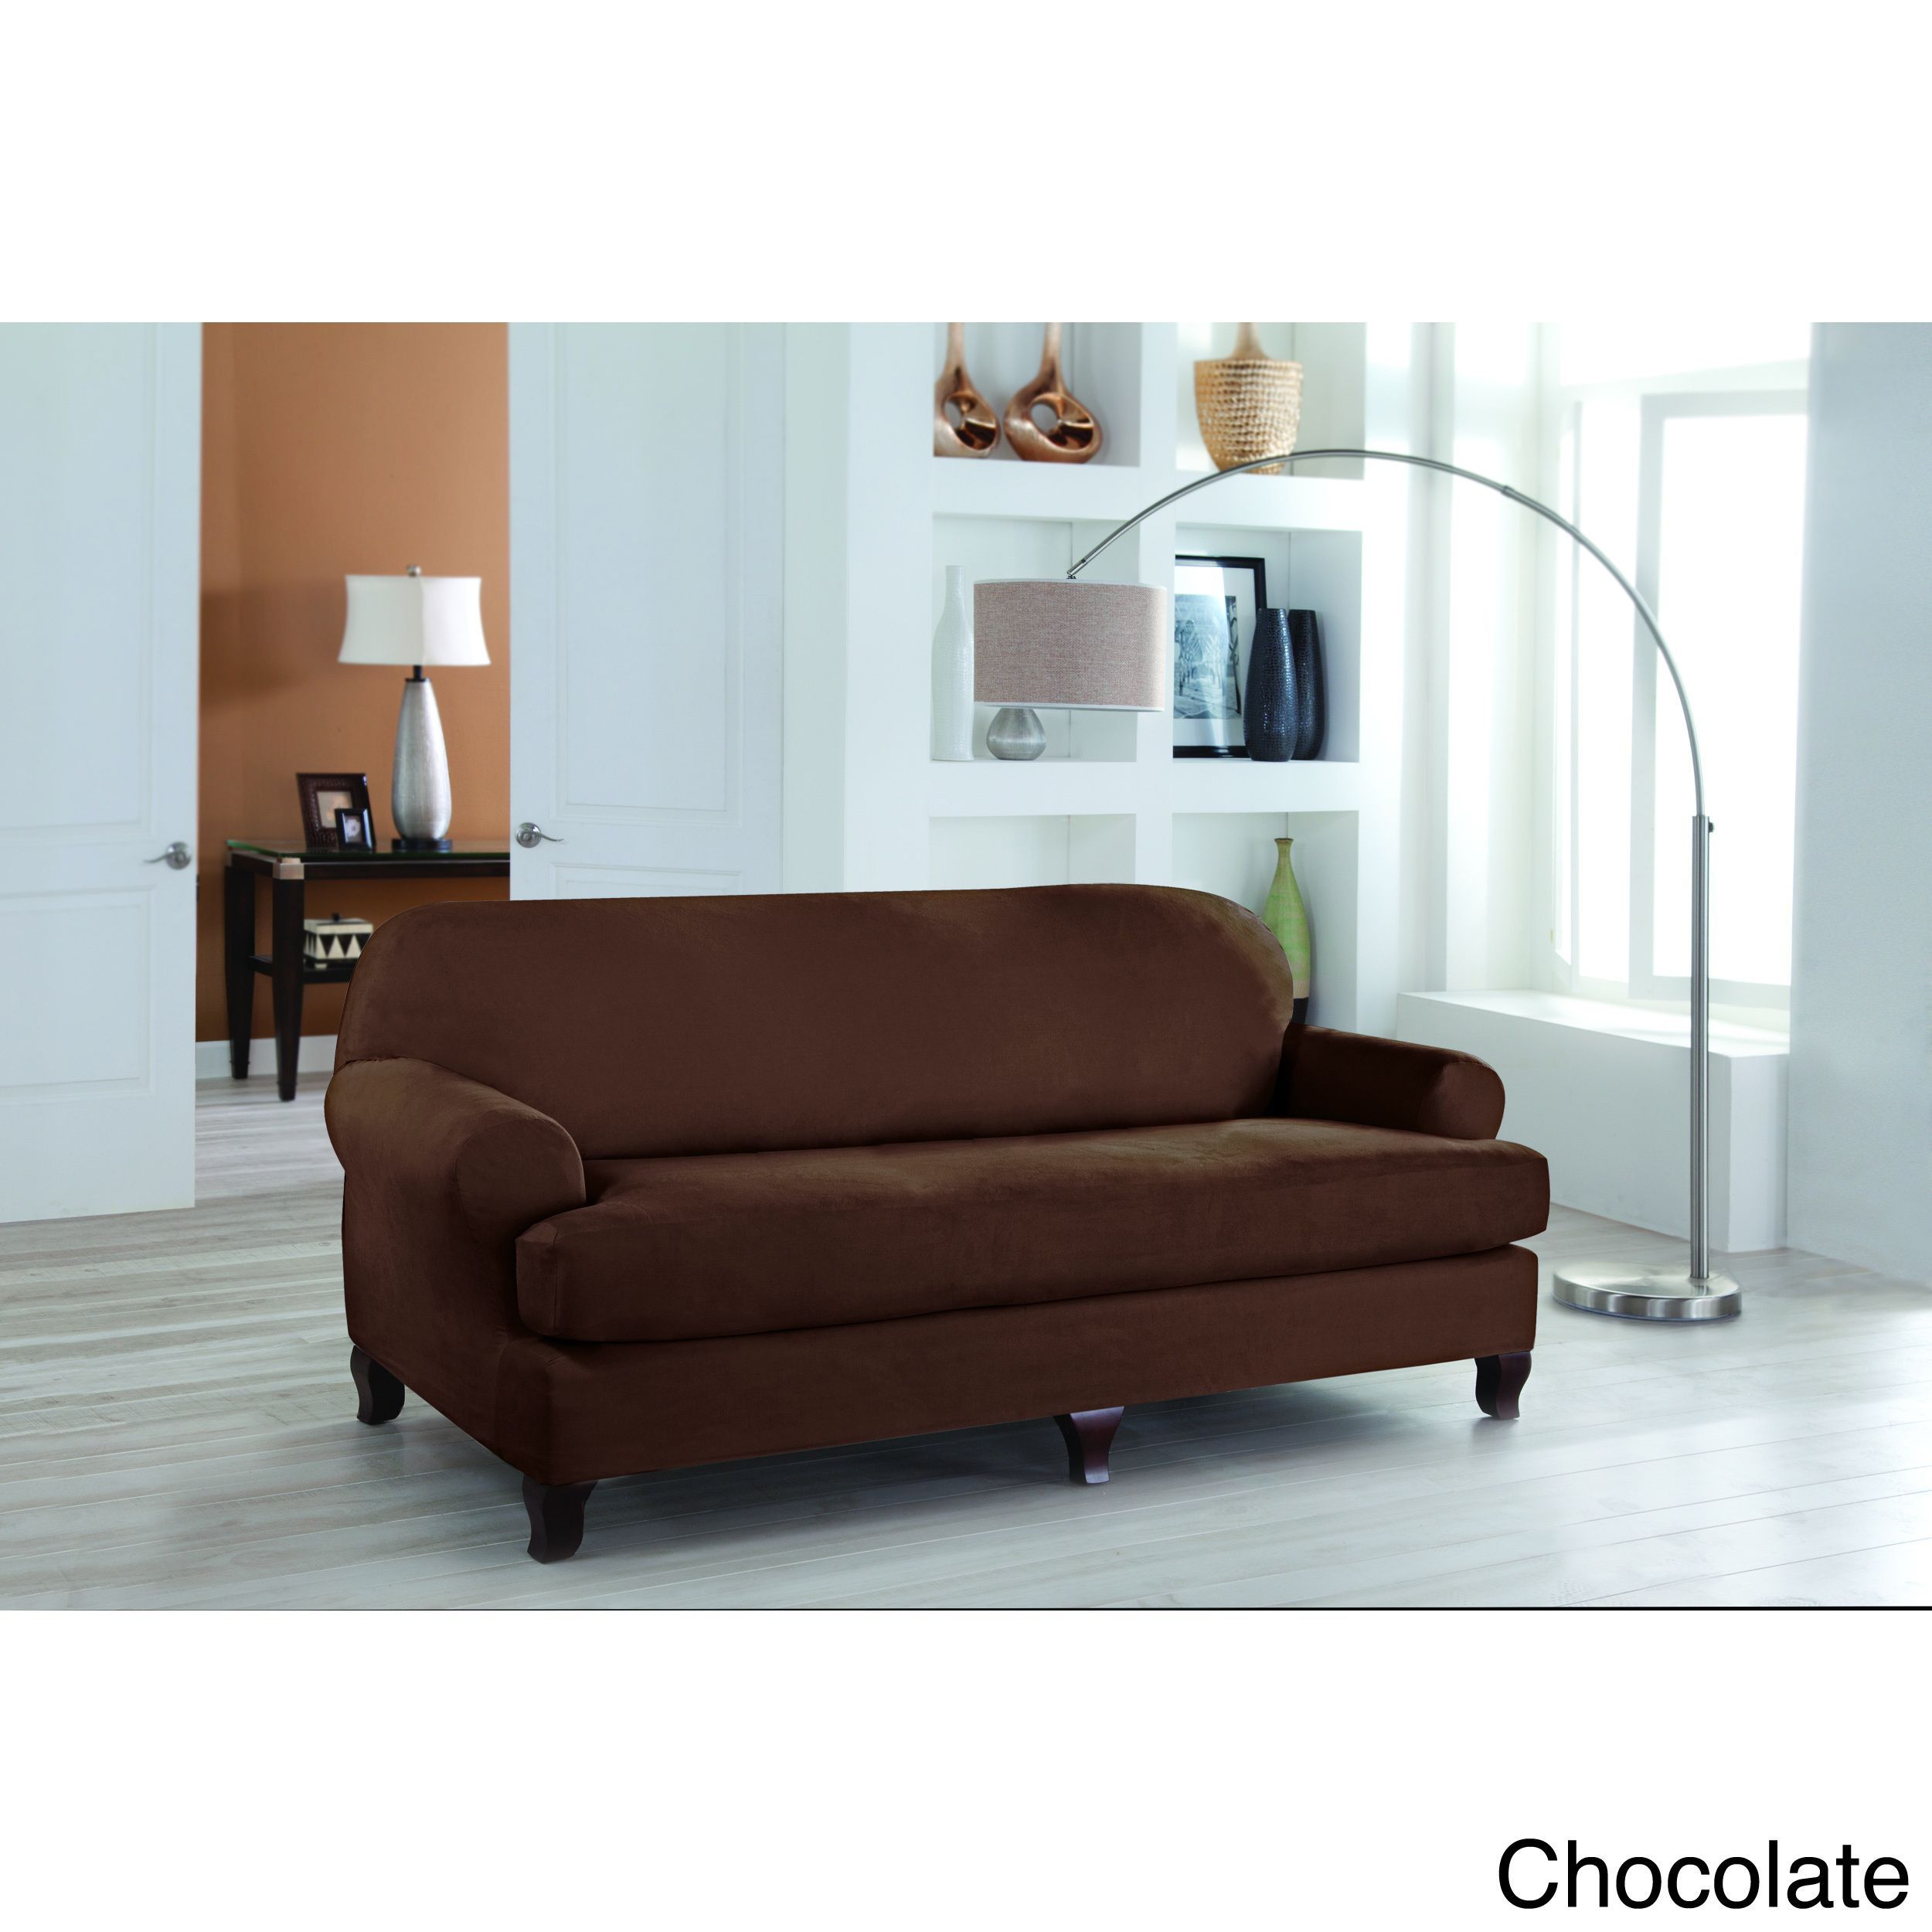 Tailor Fit Stretch Fit T Sofa Slipcover (2 Piece Set) By Tailor Fit